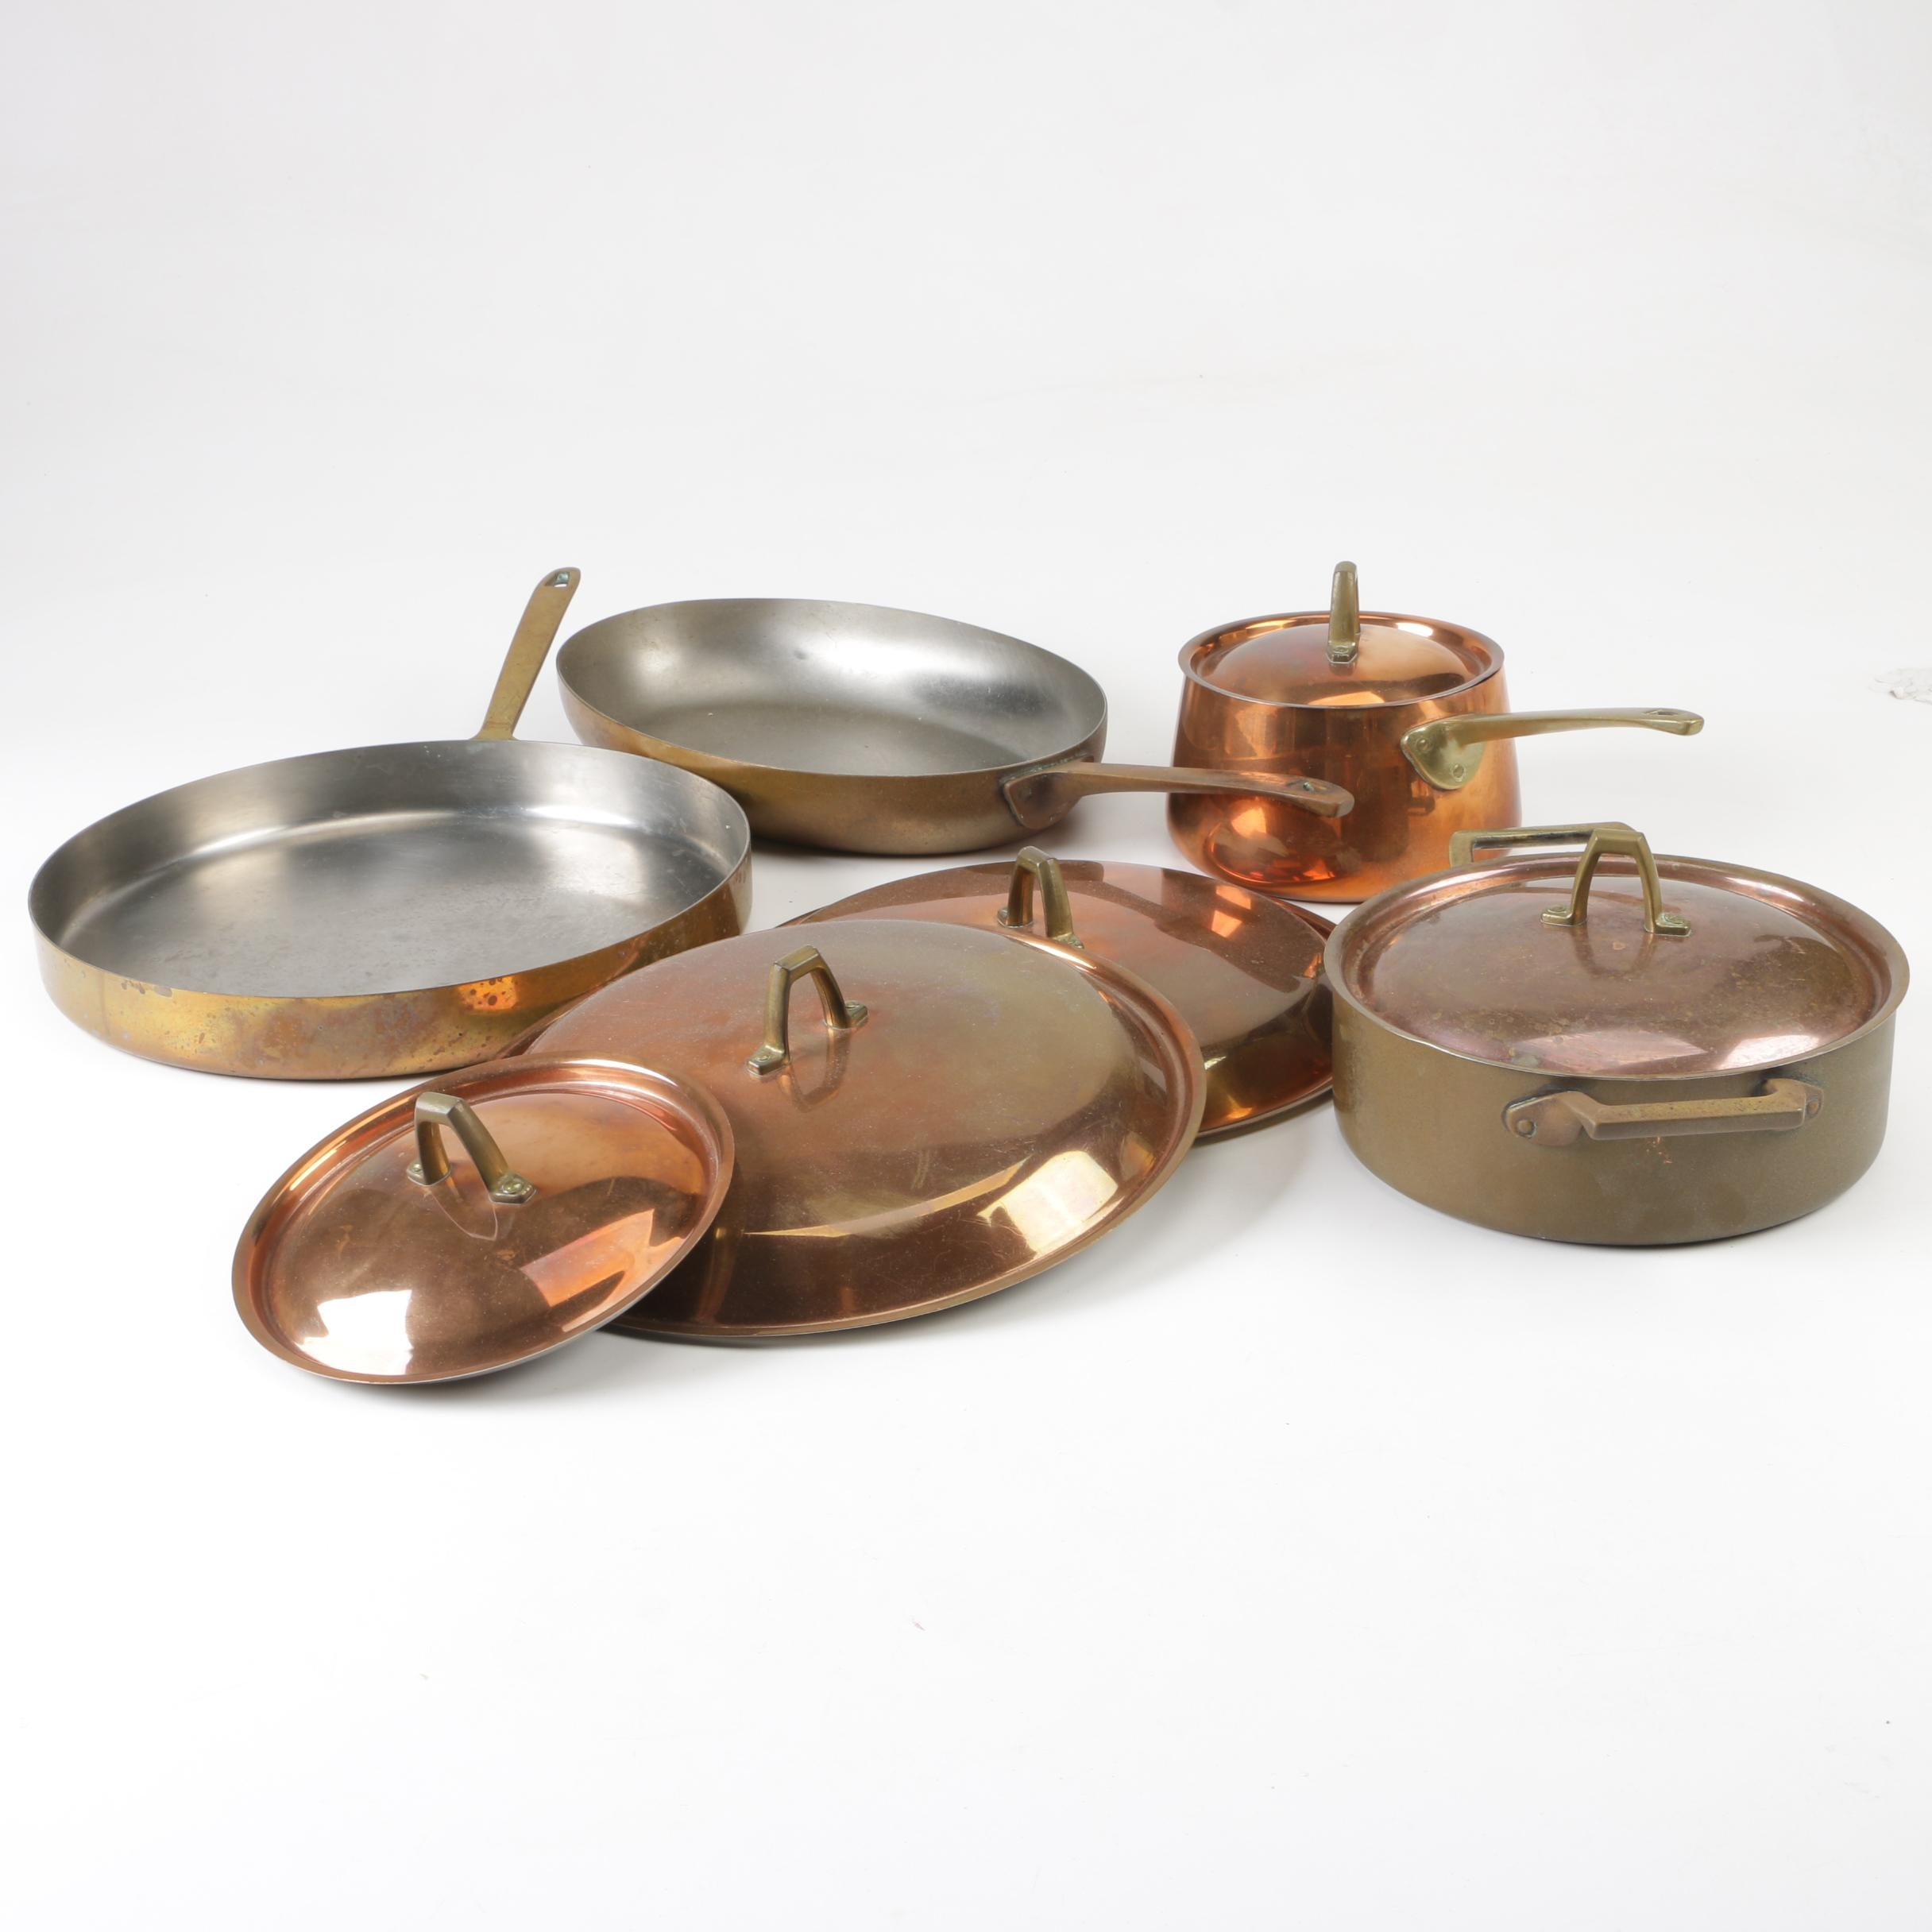 Paul Revere Copper Cookware, Limited Edition Sauce Pot and Lids